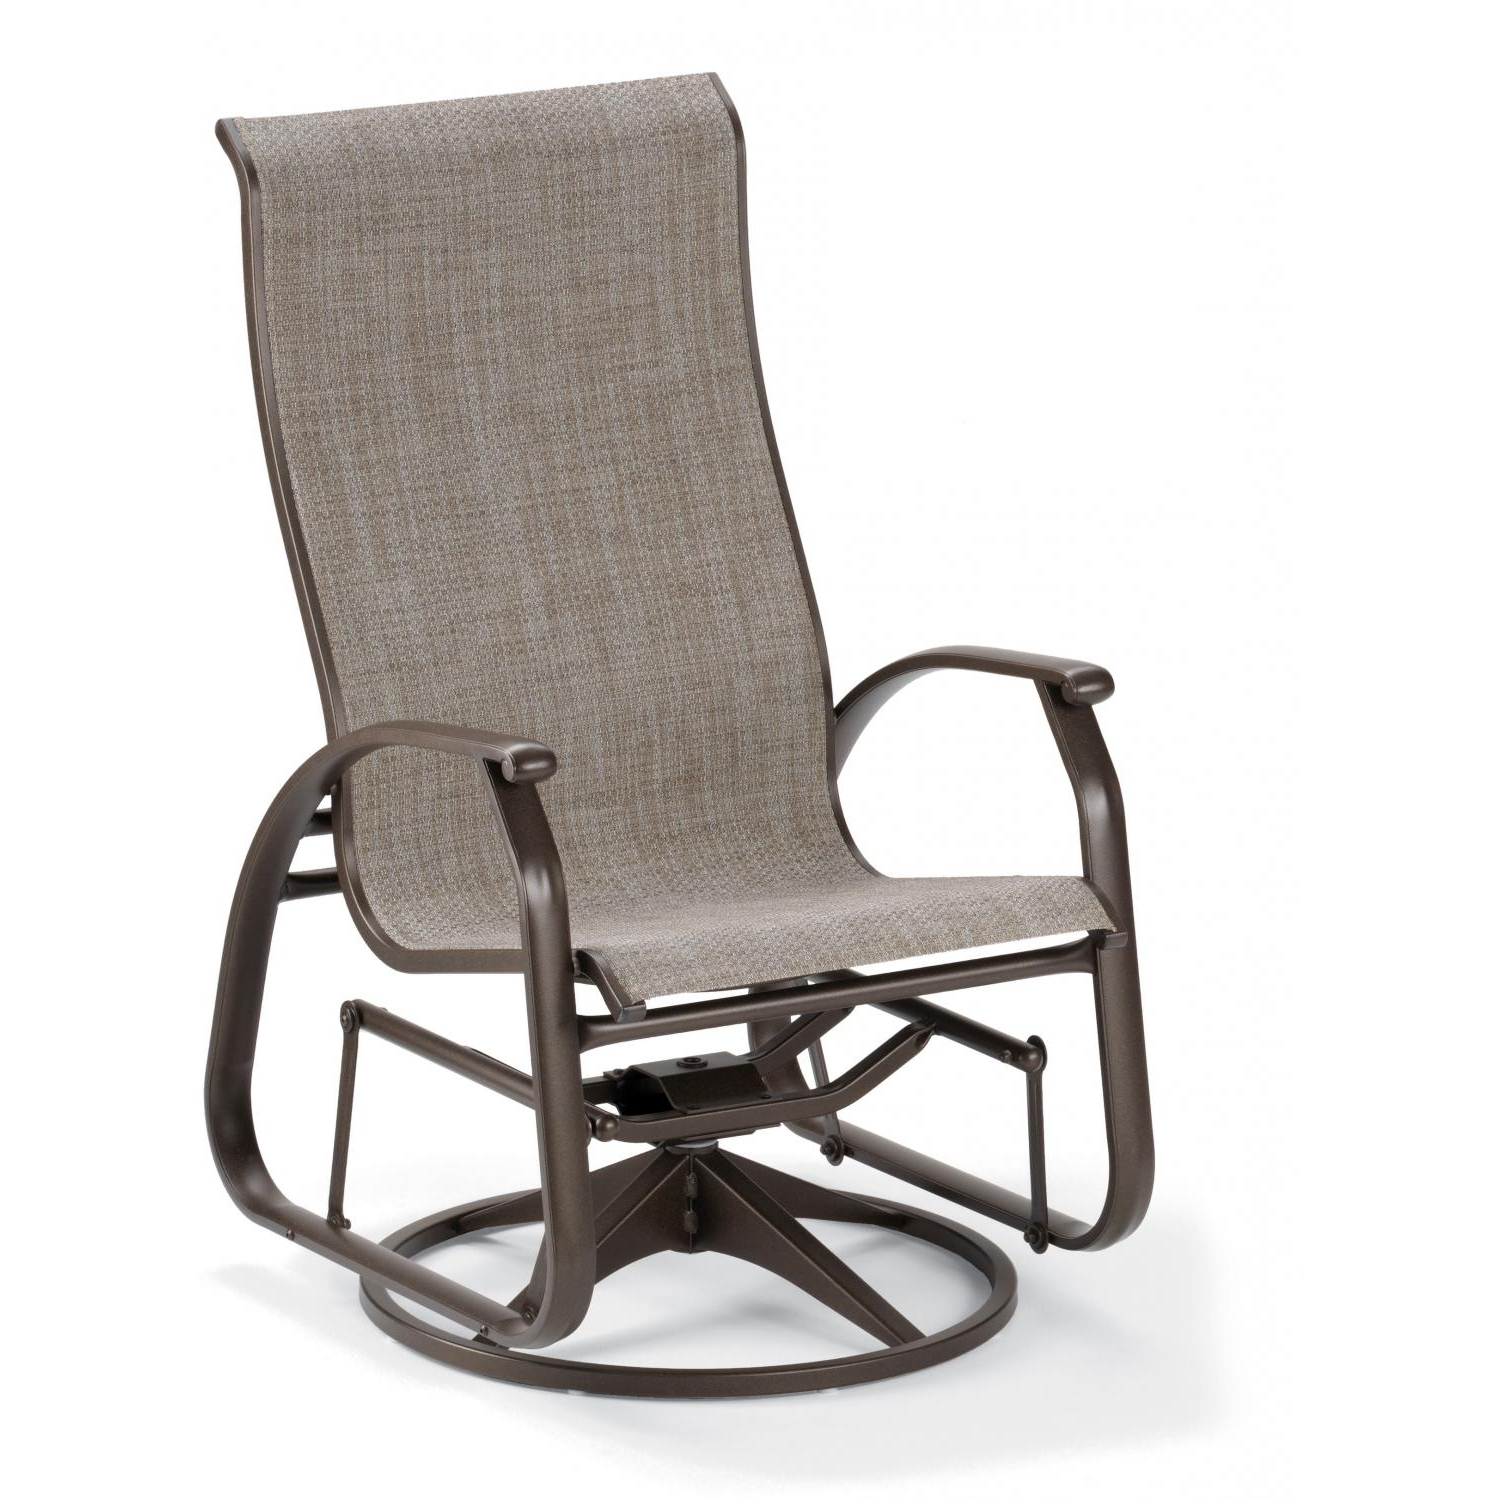 Popular Patio Sling Rocking Chairs In Telescope Casual Cape May Sling Patio Supreme Swivel Glider Dining (View 12 of 15)